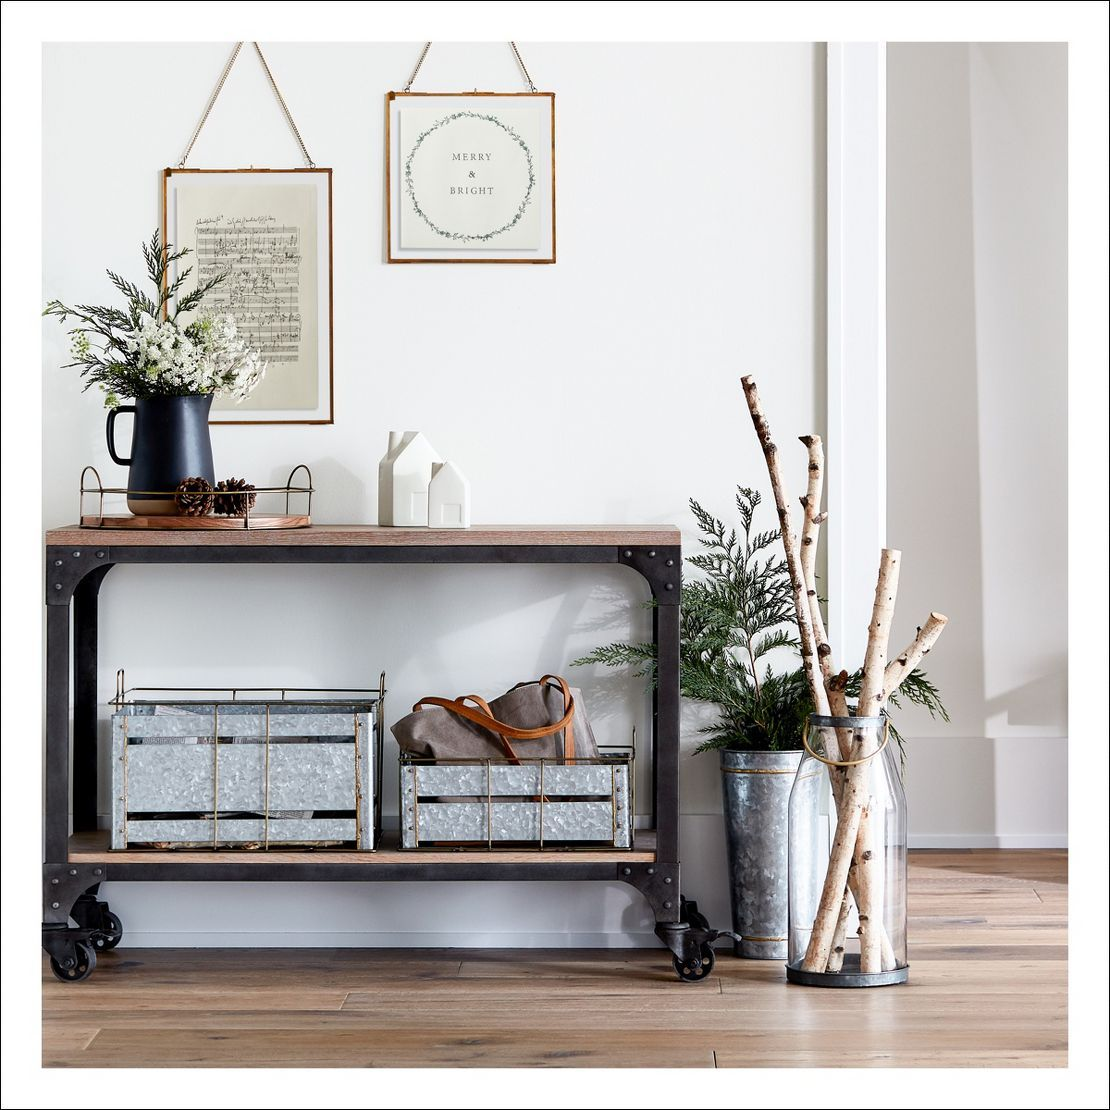 Joanna gaines hallway decor  Console Table and Decor ideas  Tables  Pinterest  Console tables